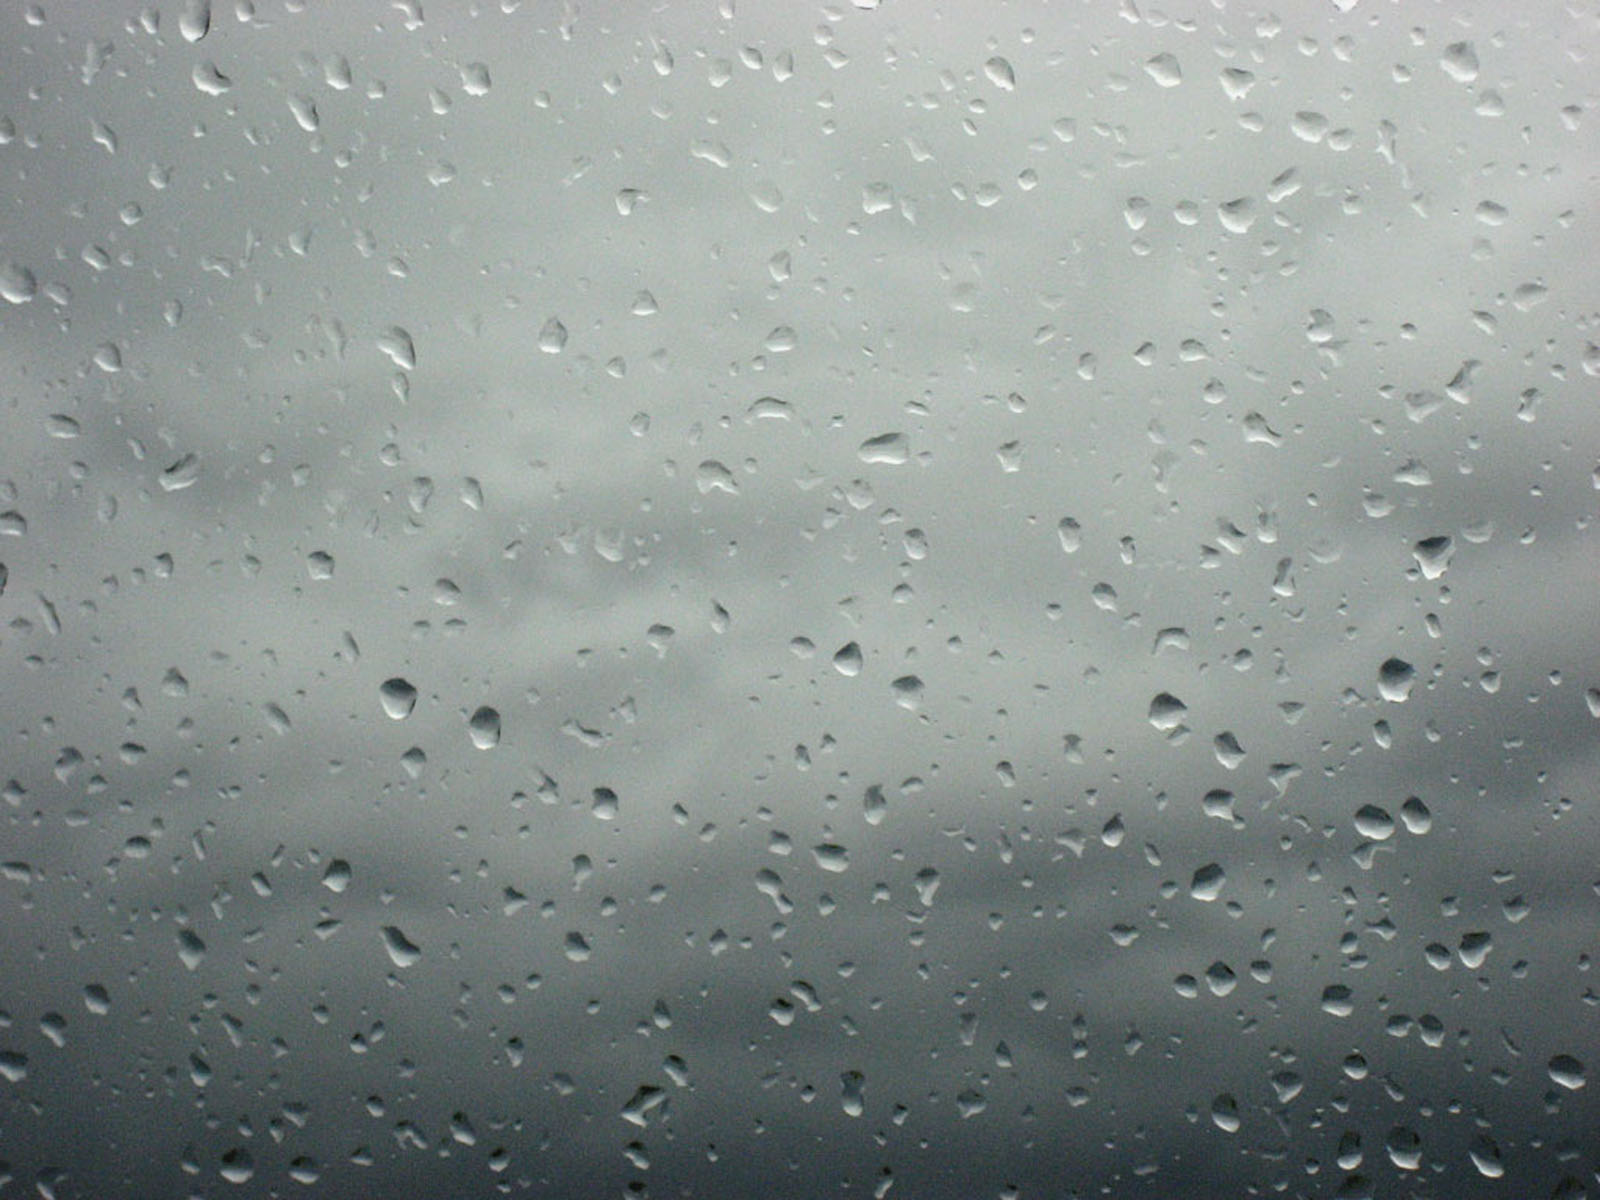 Tag Rain Drops on Glass Wallpapers Images Photos and Pictures for 1600x1200